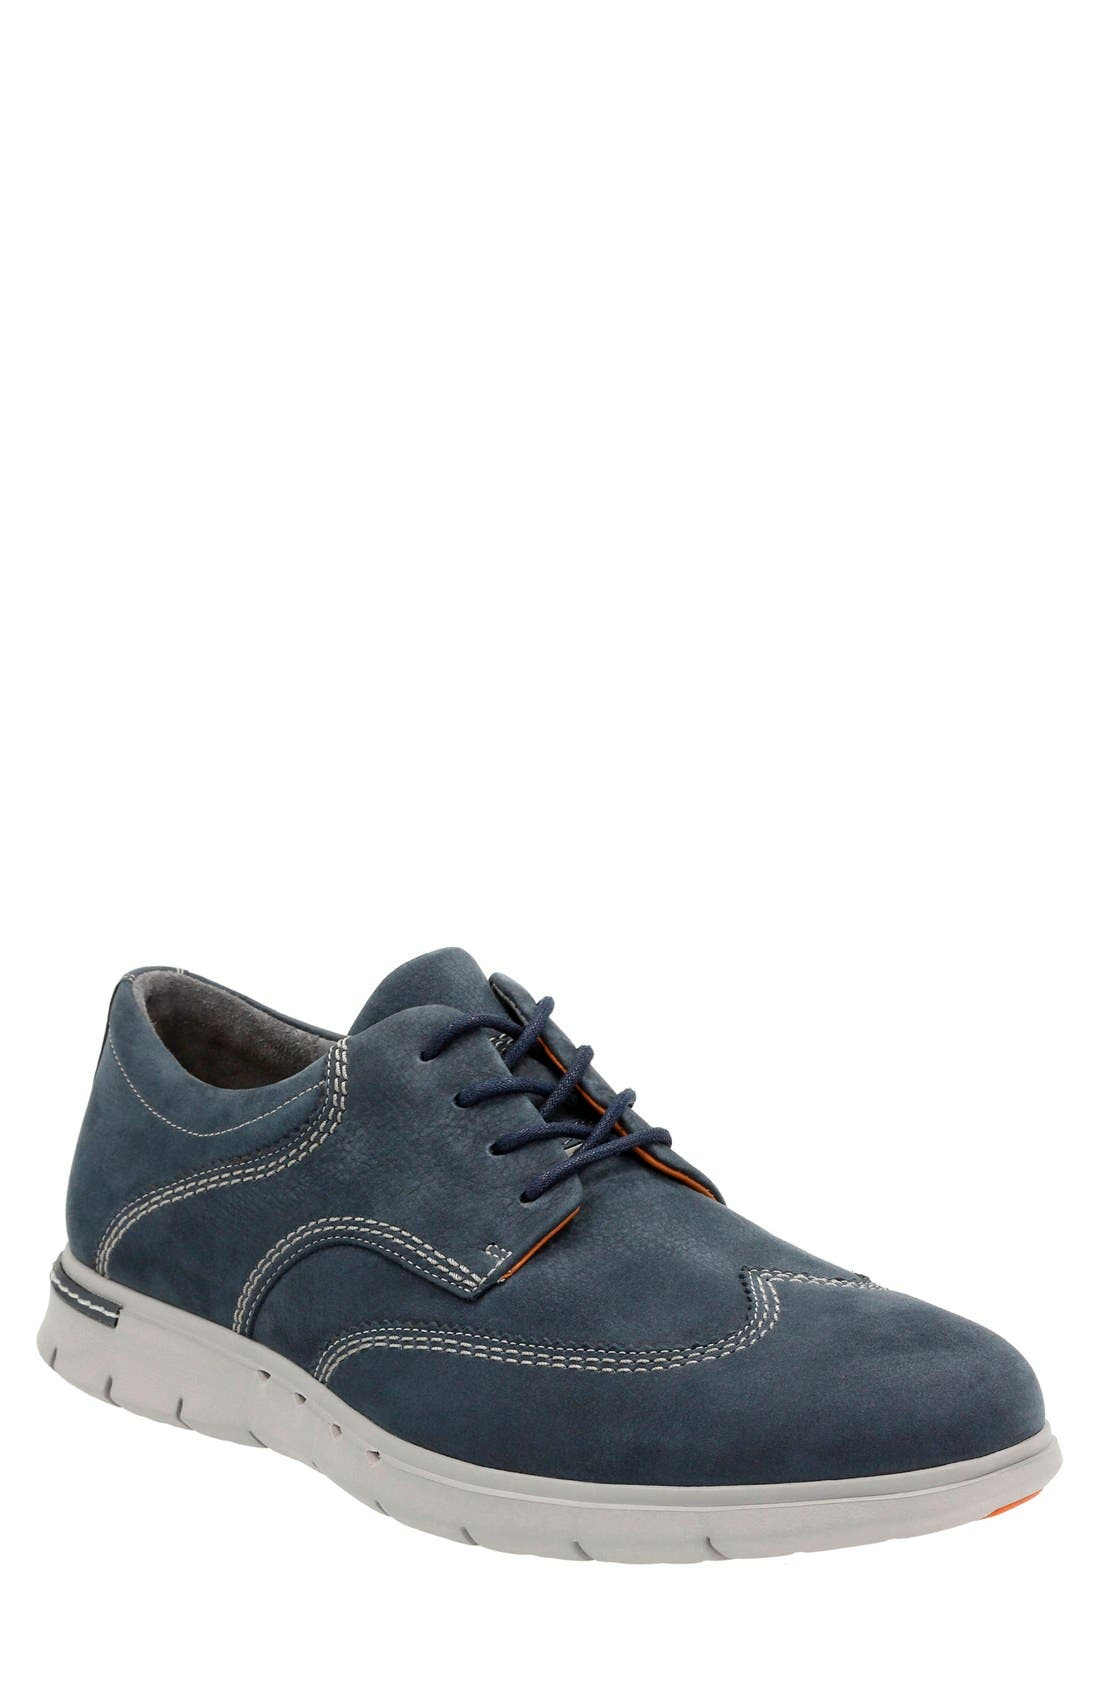 CLARKS® 'Unstructured - Byner Way' Wingtip Oxford